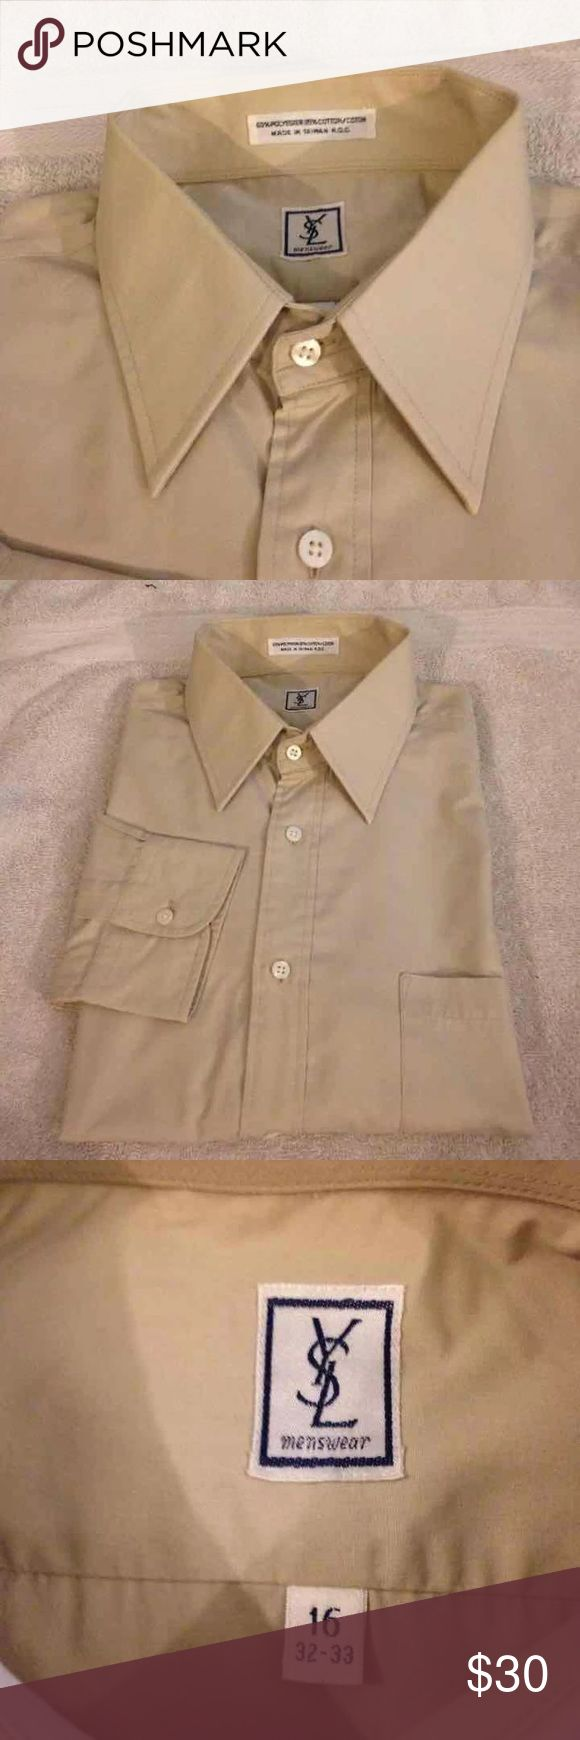 Yves Saint Laurent Tan Shirt 16 32/33 Yves Saint Laurent YSL Solid Tan Dress Shirt size 16 32/33! Great condition! Please make reasonable offers and bundle! Ask questions! :) Yves Saint Laurent Shirts Dress Shirts